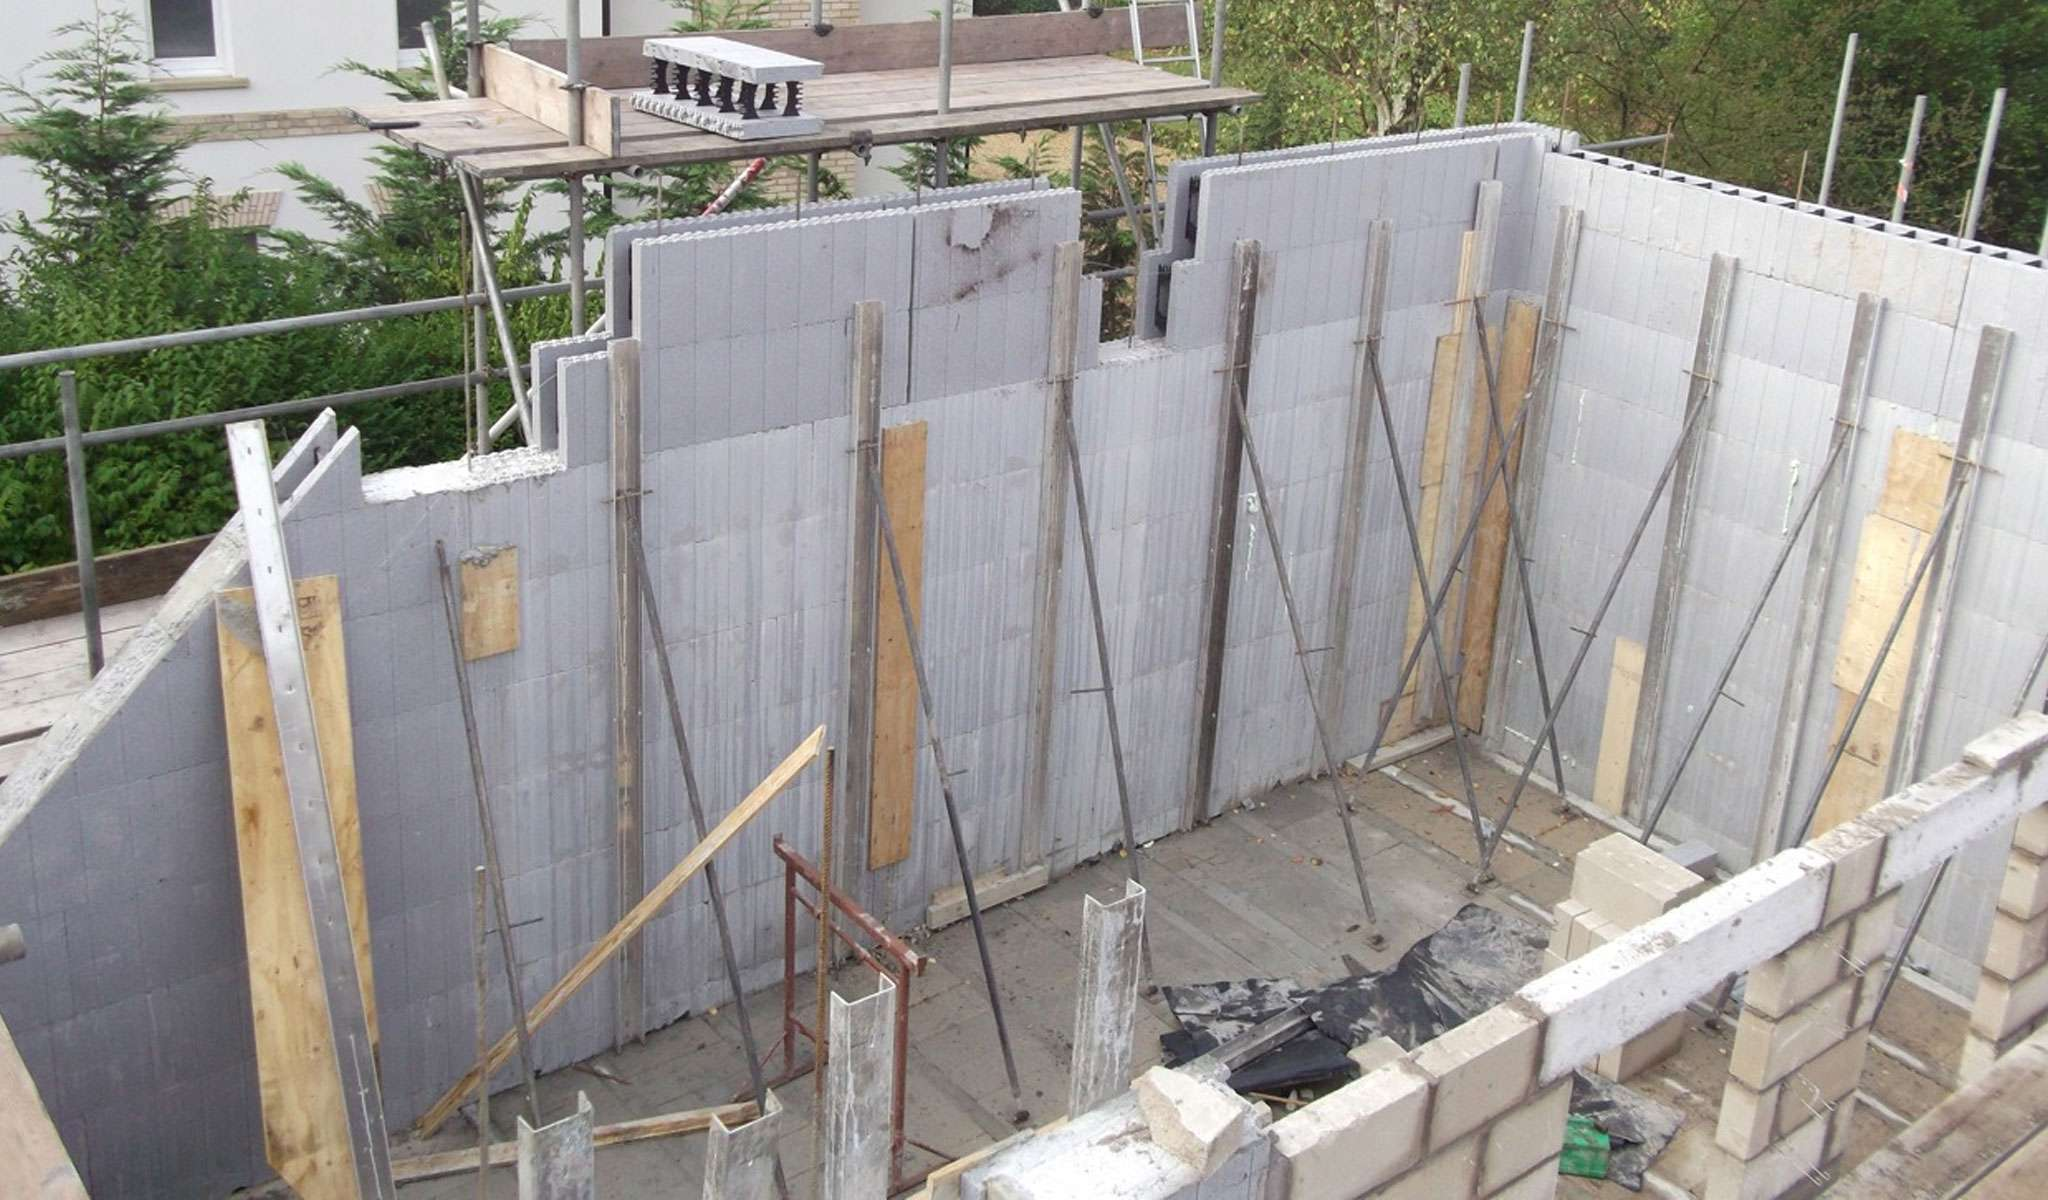 What do you think of ICF blocks?